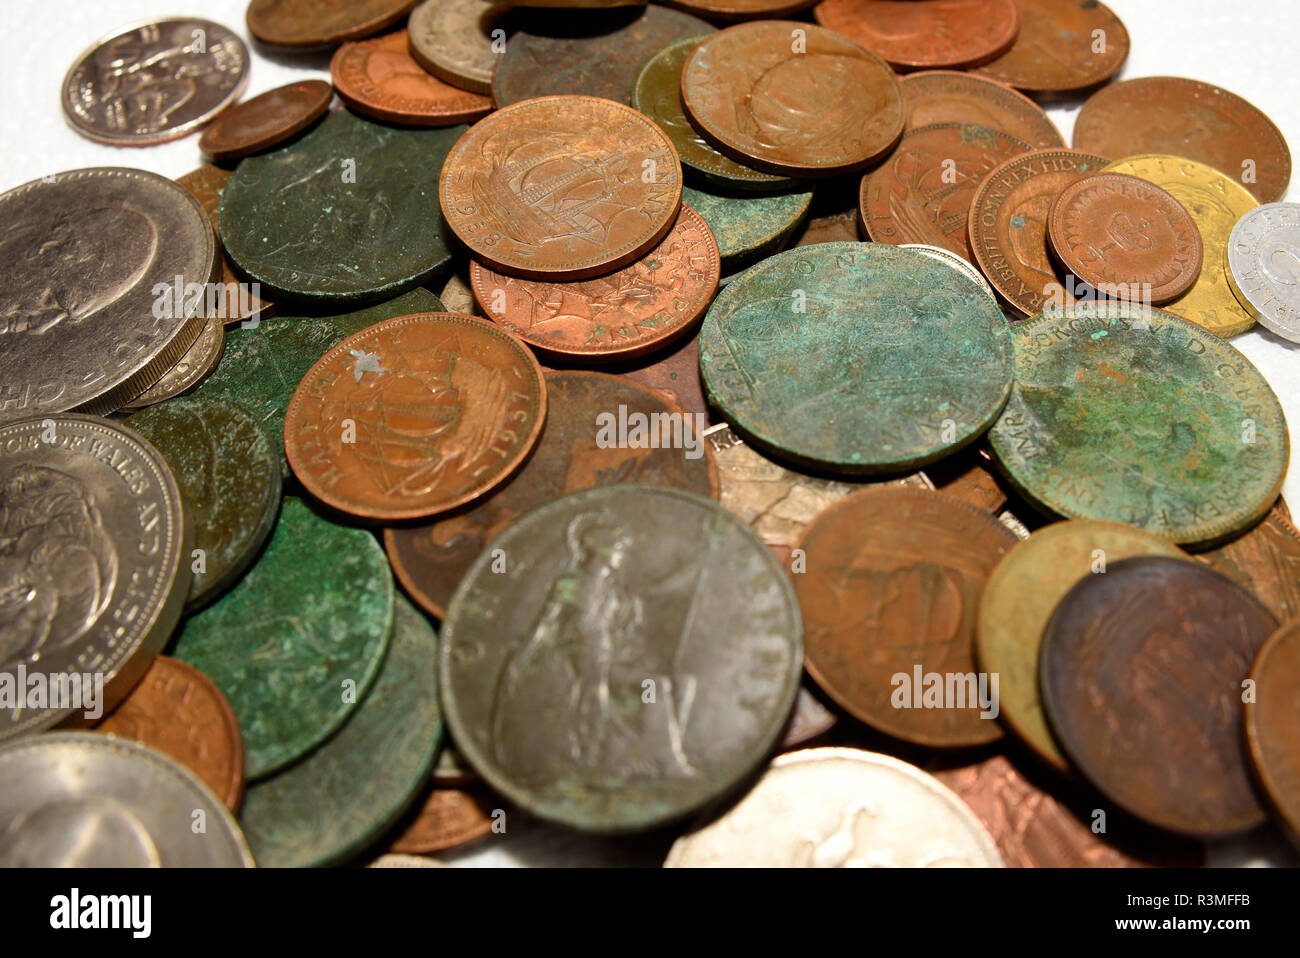 Old British Coins Stock Photos & Old British Coins Stock